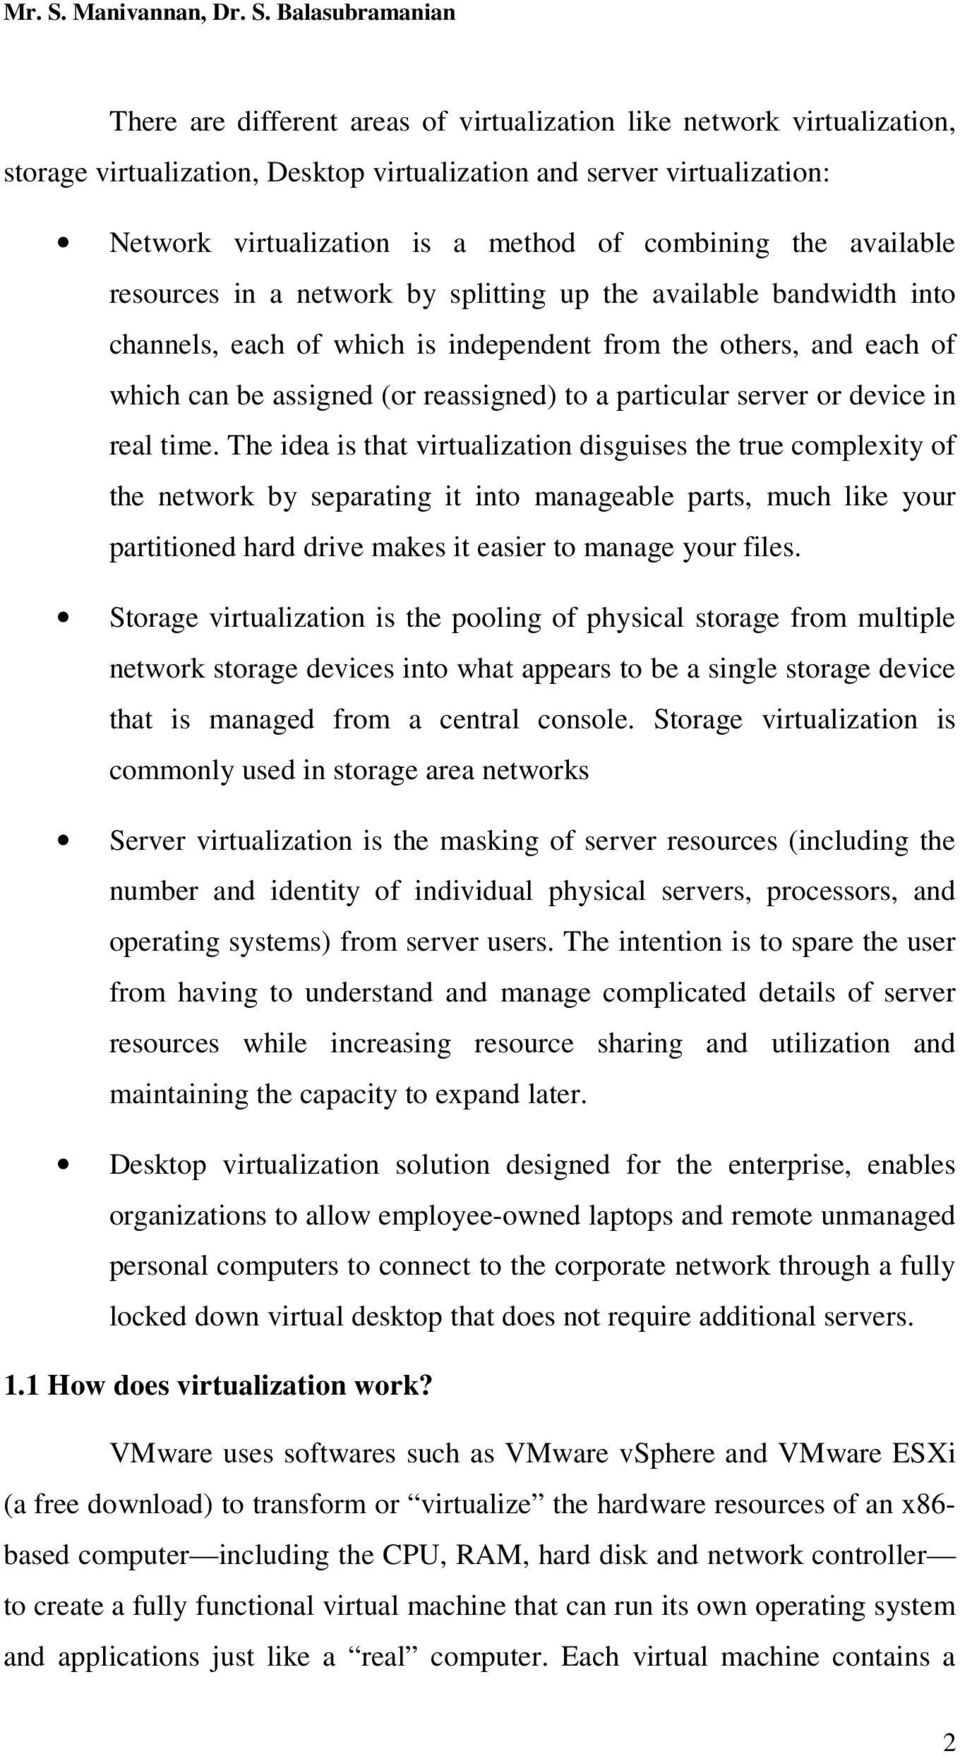 Balasubramanian There are different areas of virtualization like network virtualization, storage virtualization, Desktop virtualization and server virtualization: Network virtualization is a method